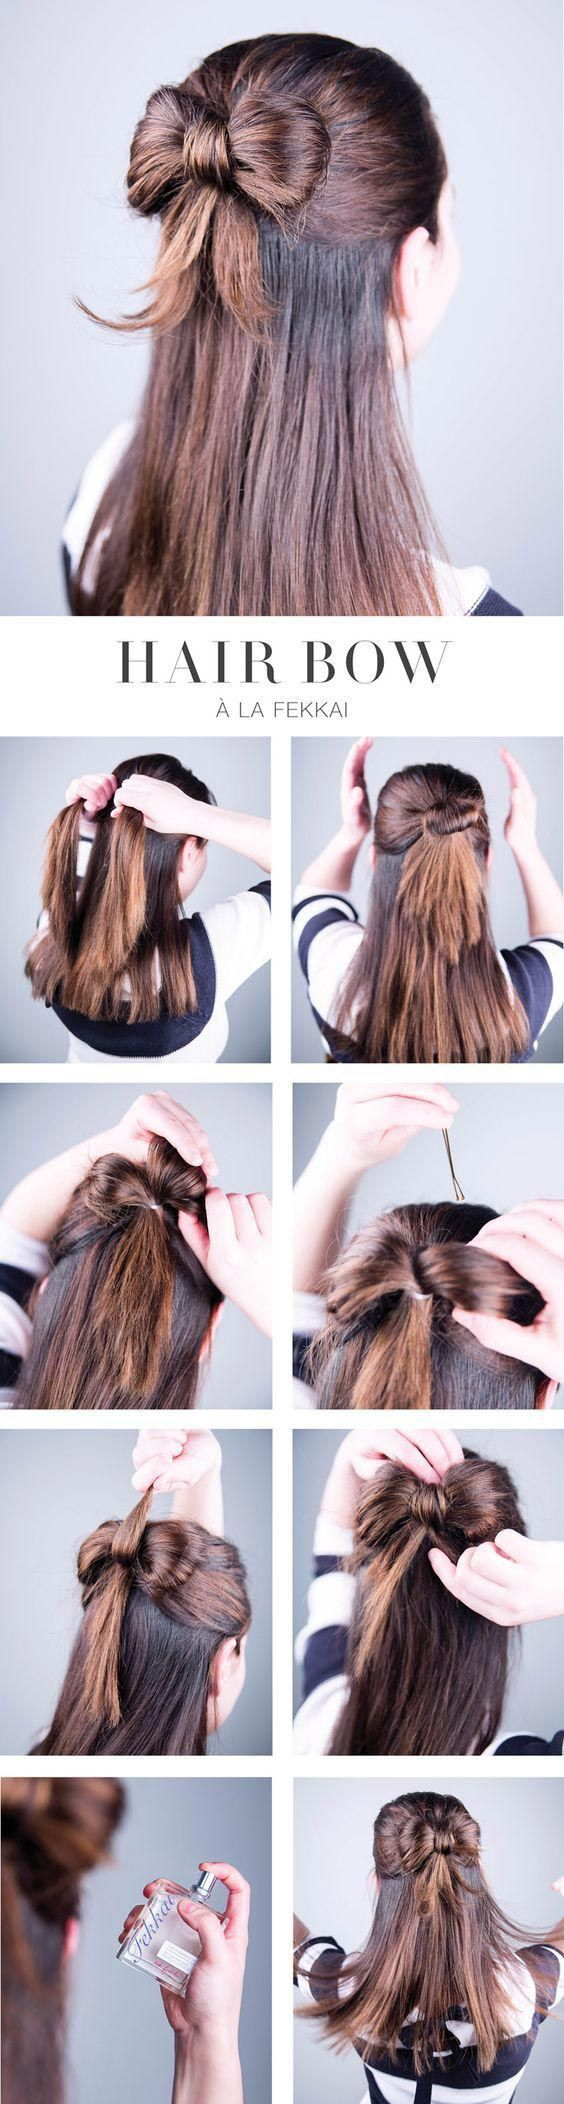 Cute Bow Hairstyle #hair #bowie  #hairstyle #halfupdo #womentriangle #christmas